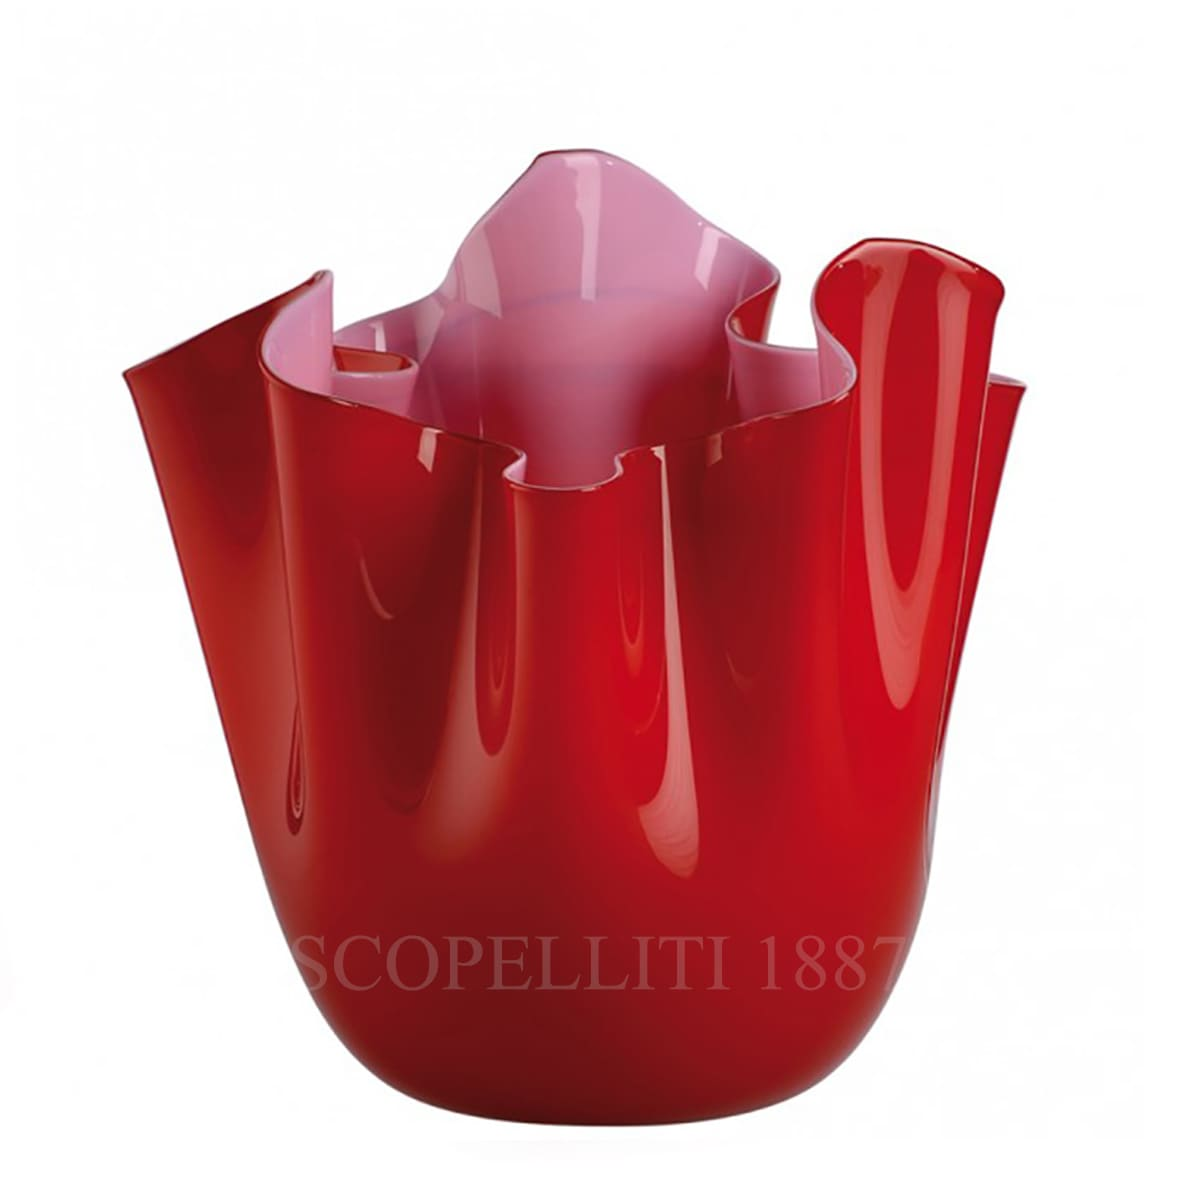 Venini Fazzoletto Vase large red/opaque-pink 700.00